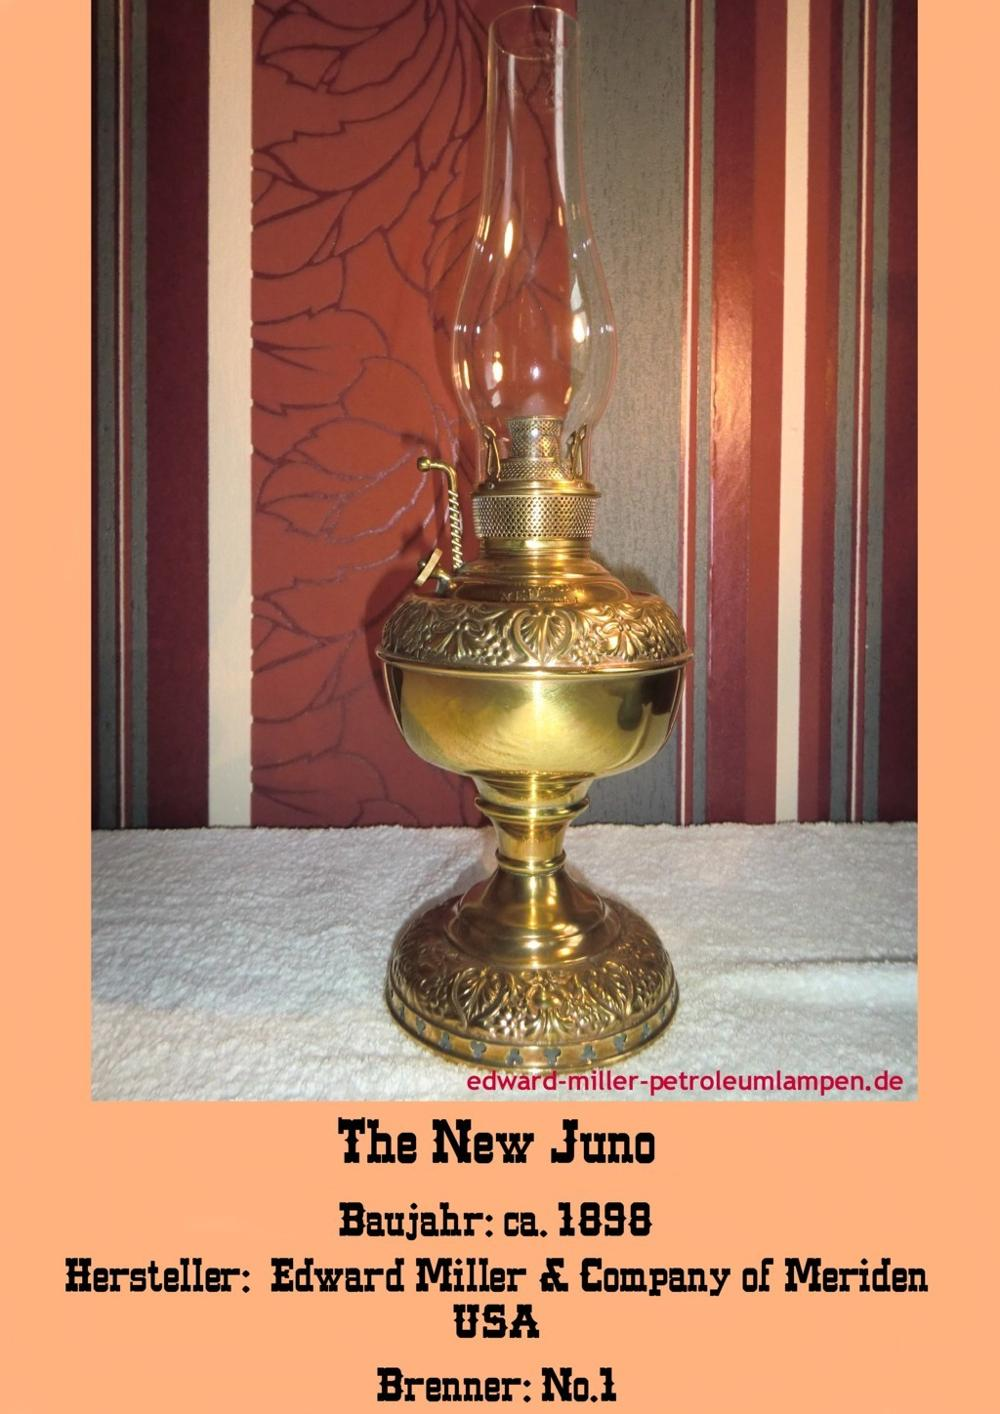 The New Juno Lamp No. 1